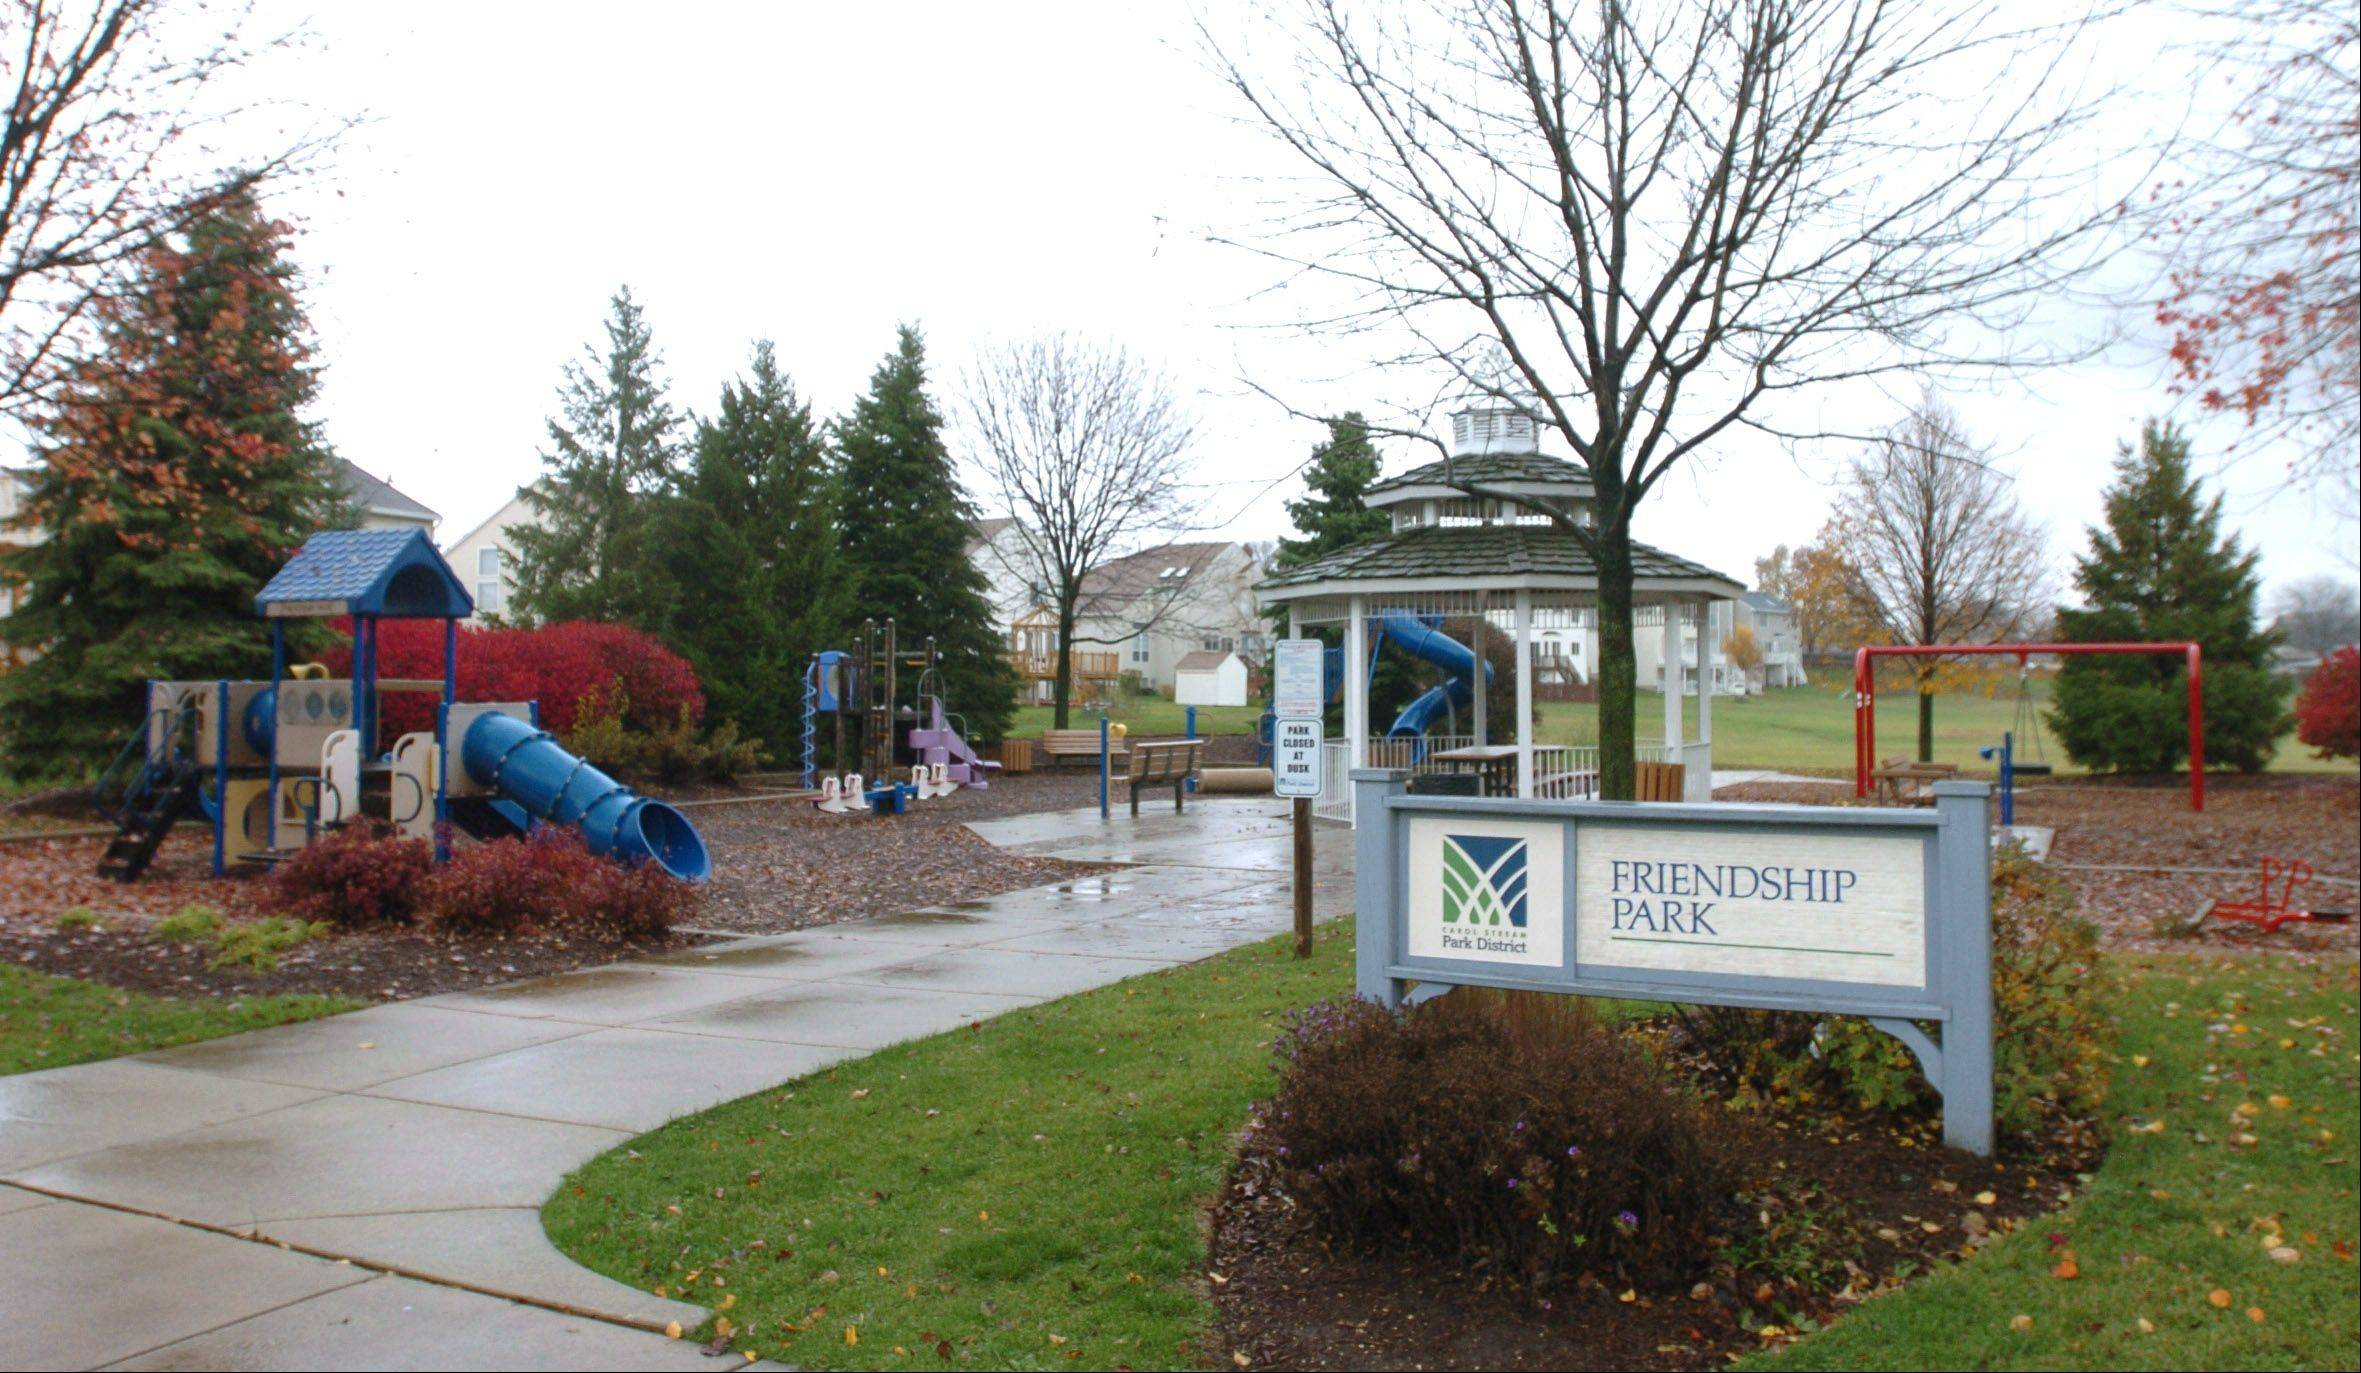 Friendship Park is located in the Renaissance neighborhood in Carol Stream.